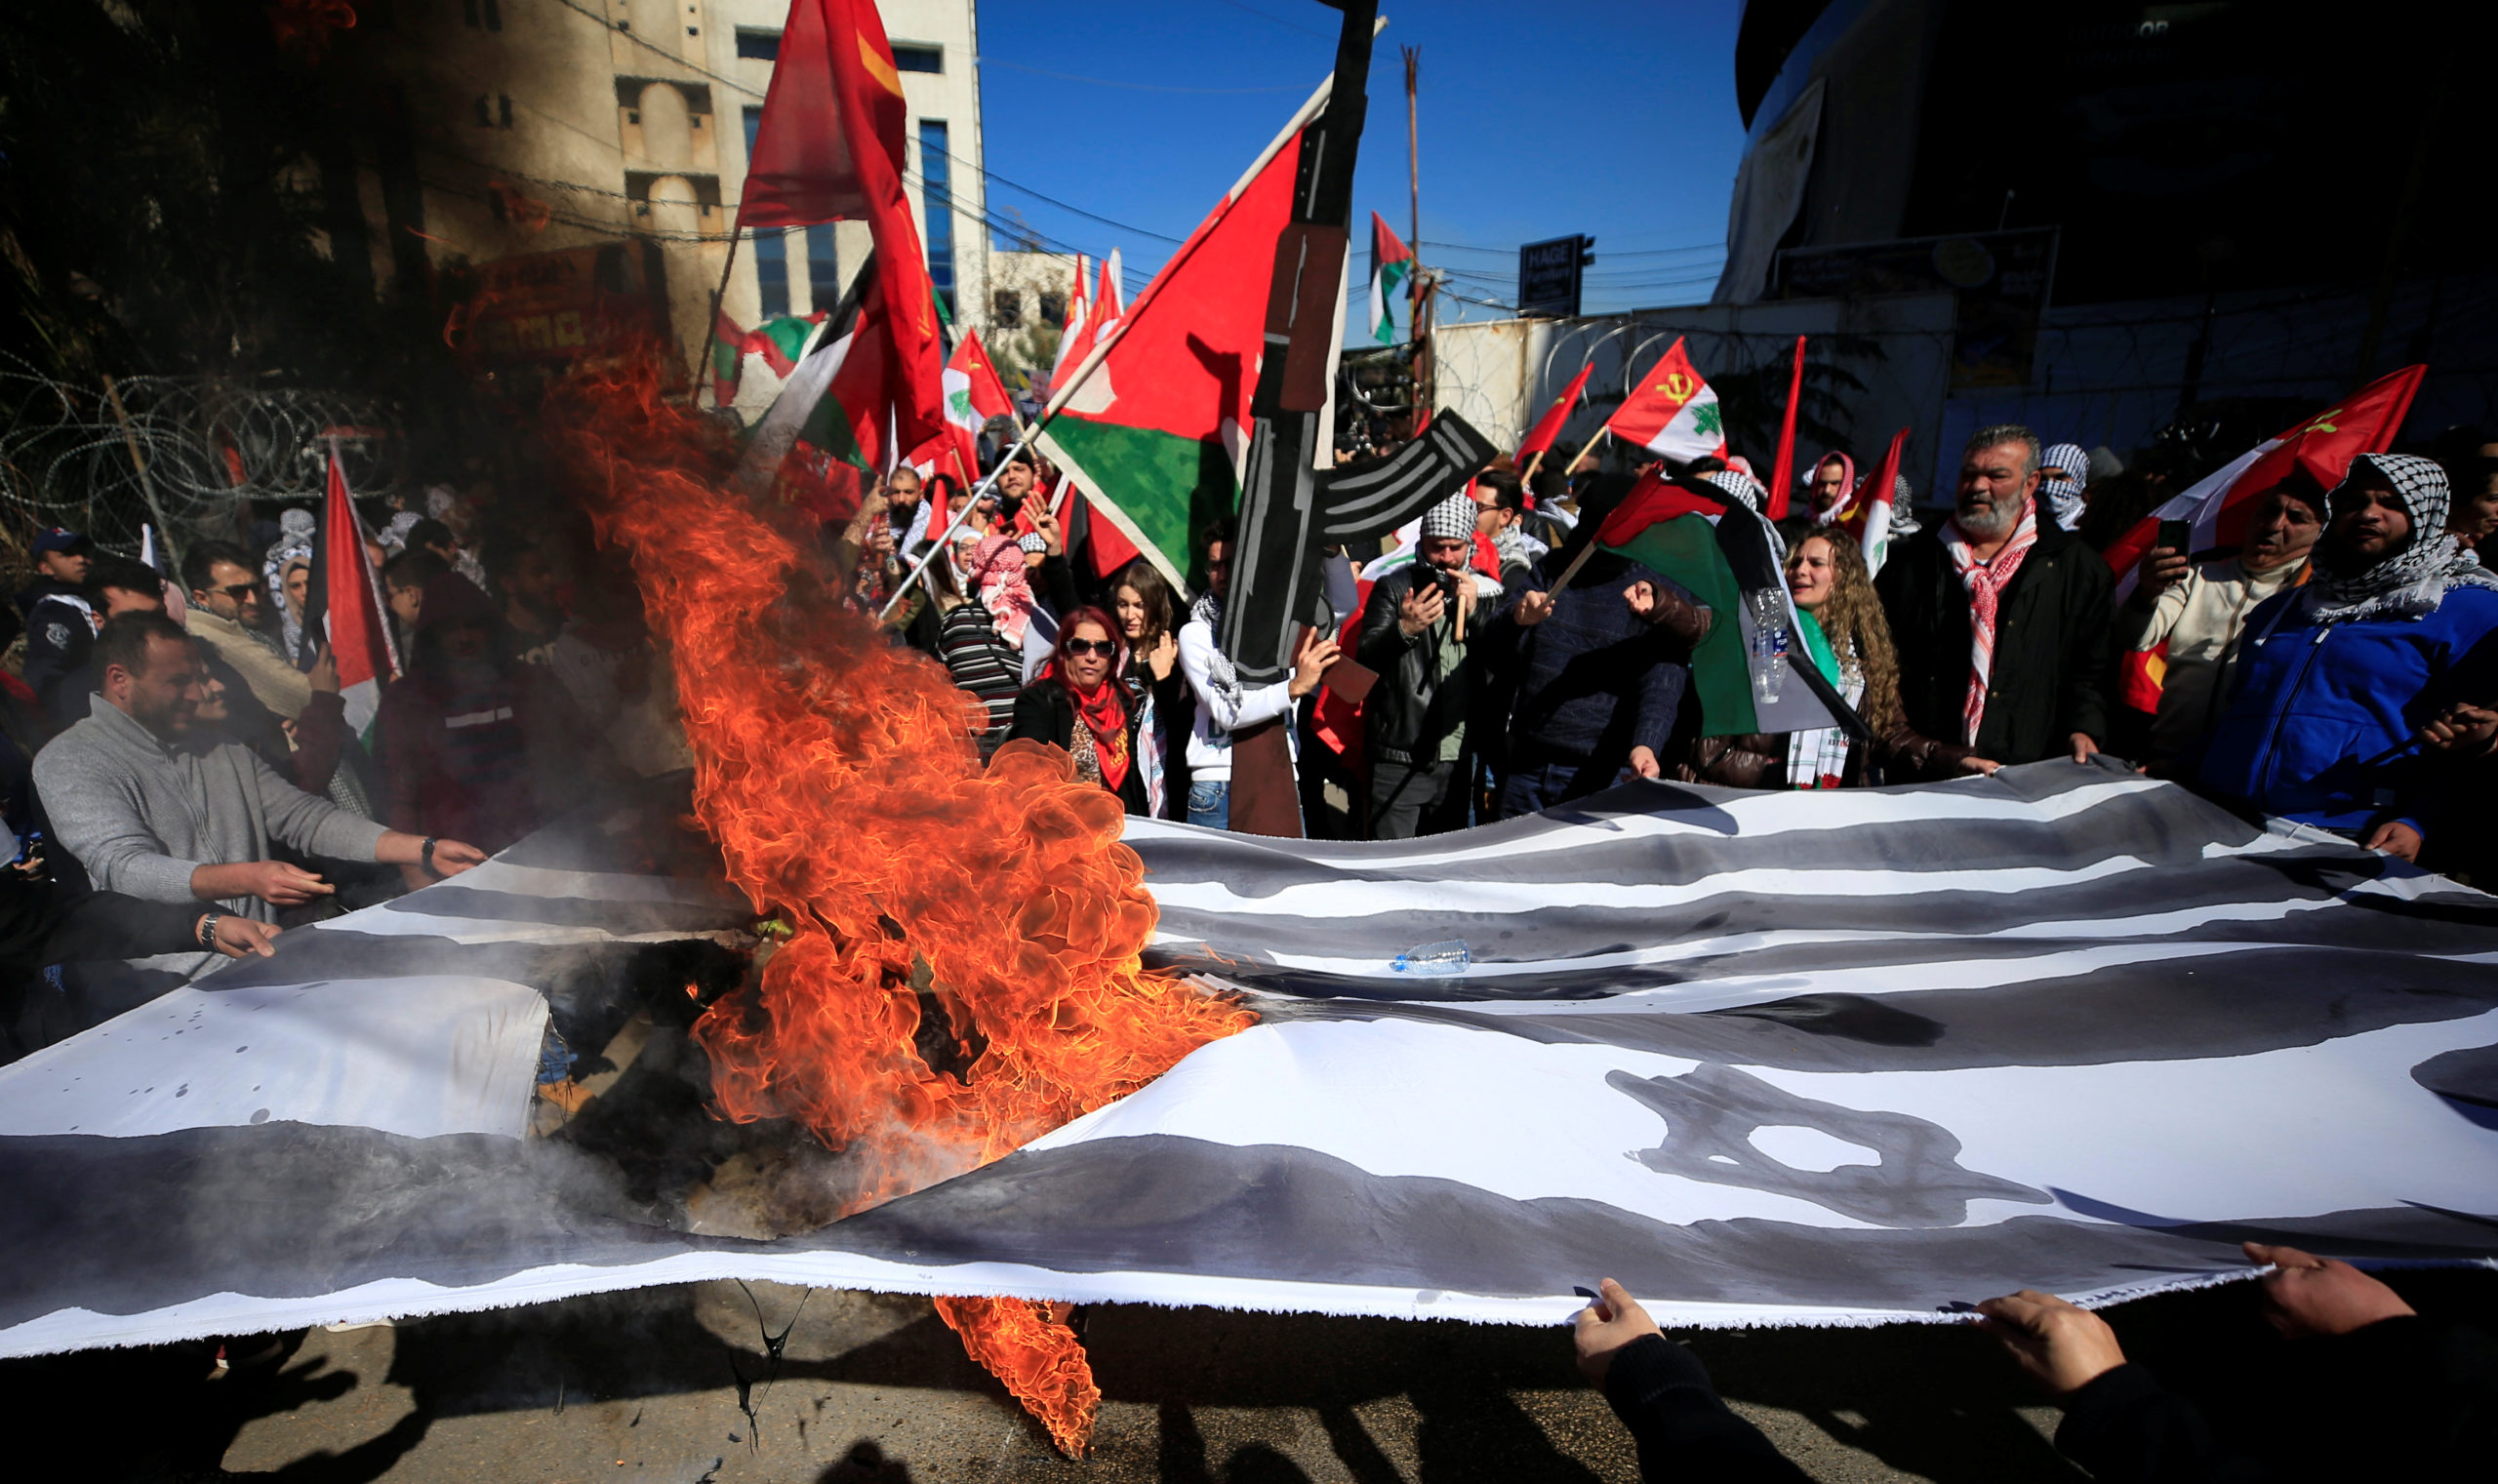 Demonstrators set fire to a makeshift Israeli and U.S. flag during a protest against the U.S. President Donald Trump's Middle East peace near the U.S. embassy in Awkar